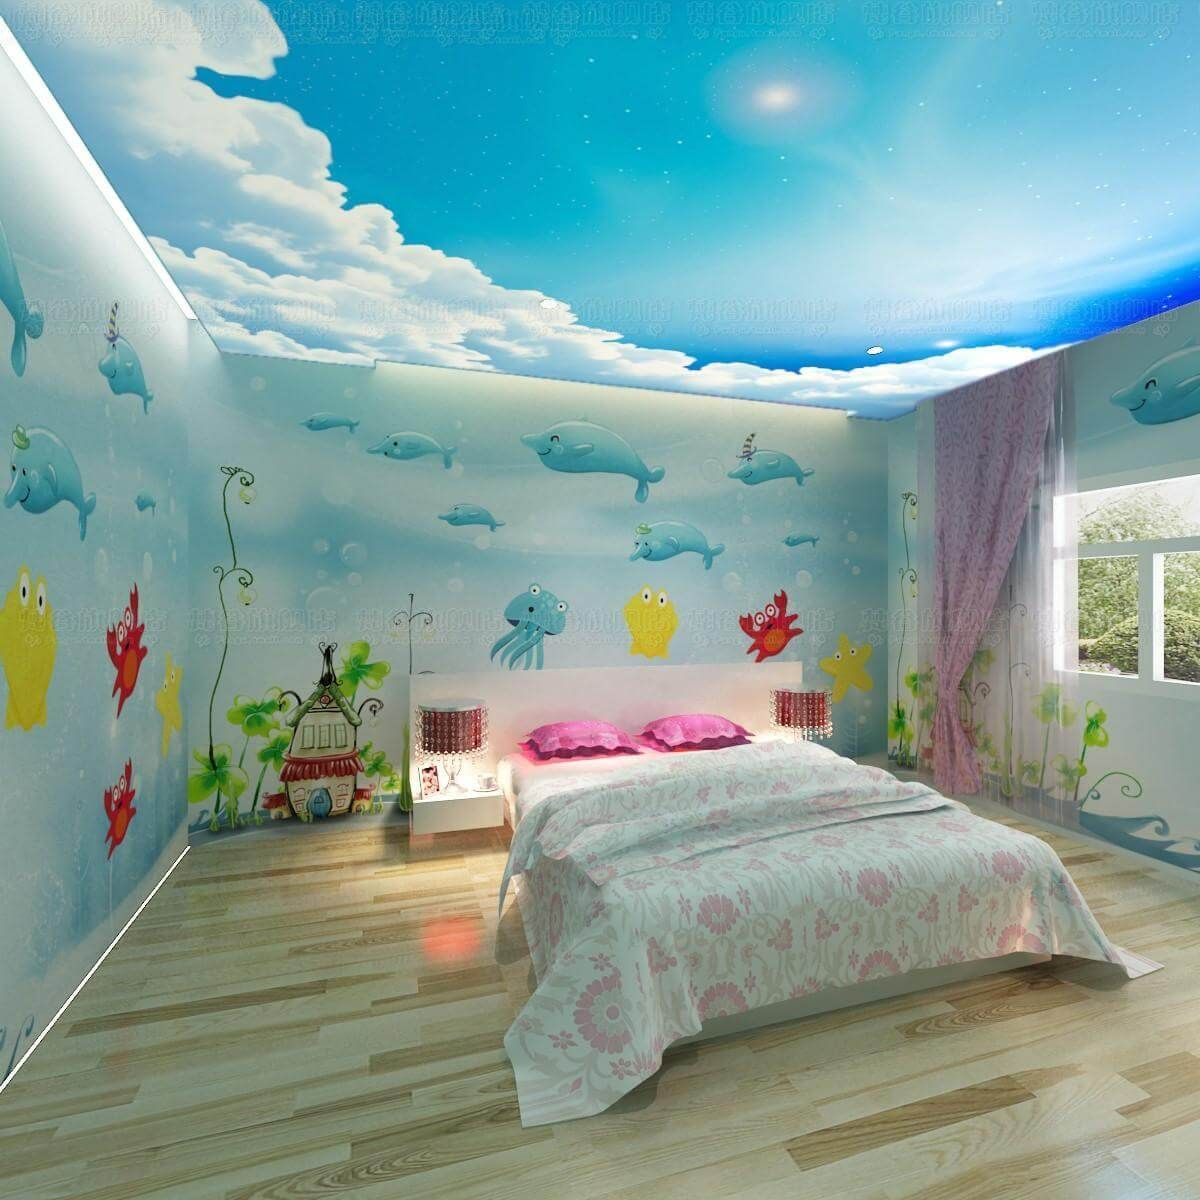 8 Most Attractive Kids Room Designs You Must See Kids Room Wallpaper Kids Bedroom Wallpaper Themed Kids Room 3d wallpaper designs for kids room